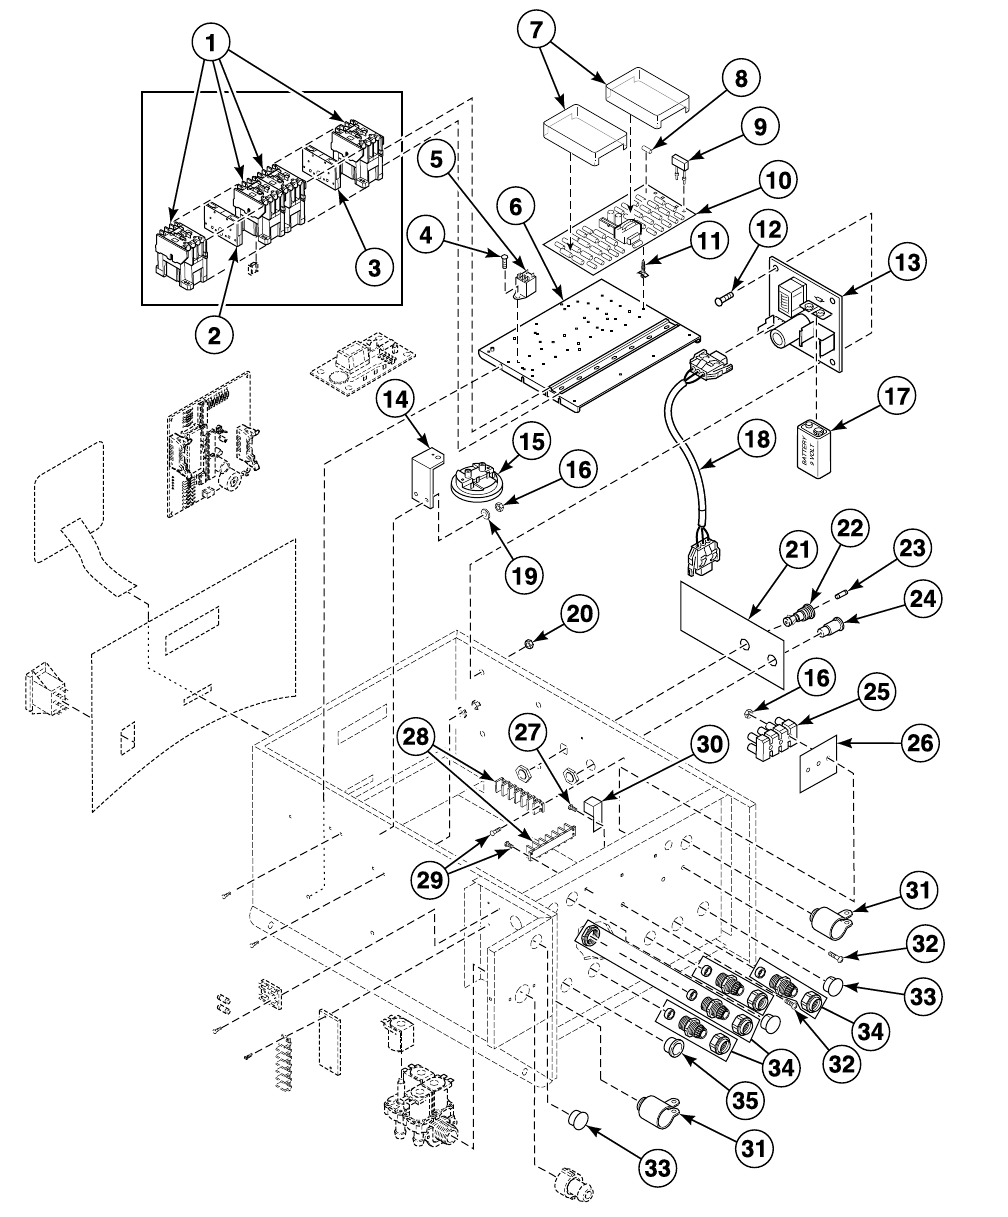 Washer Extractor Parts Manual Uw60m2 F232149 F430 Can Bus Diagram 18